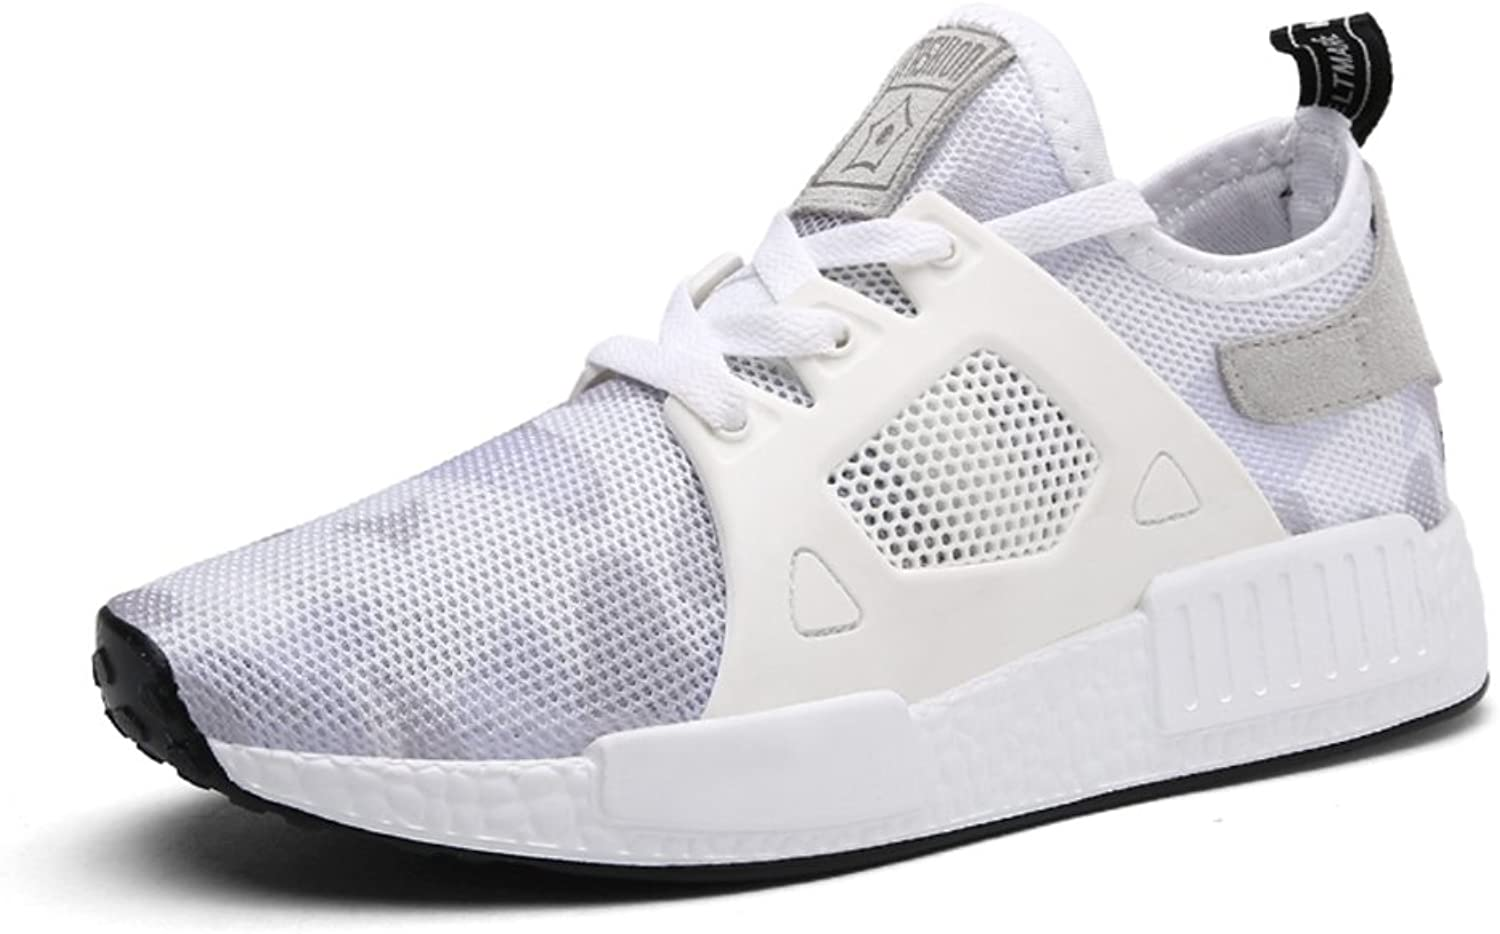 Bhujfufgv Sport shoes Breathable Mesh shoes Flat Casual shoes Thick Soles and Running shoes Nude shoes